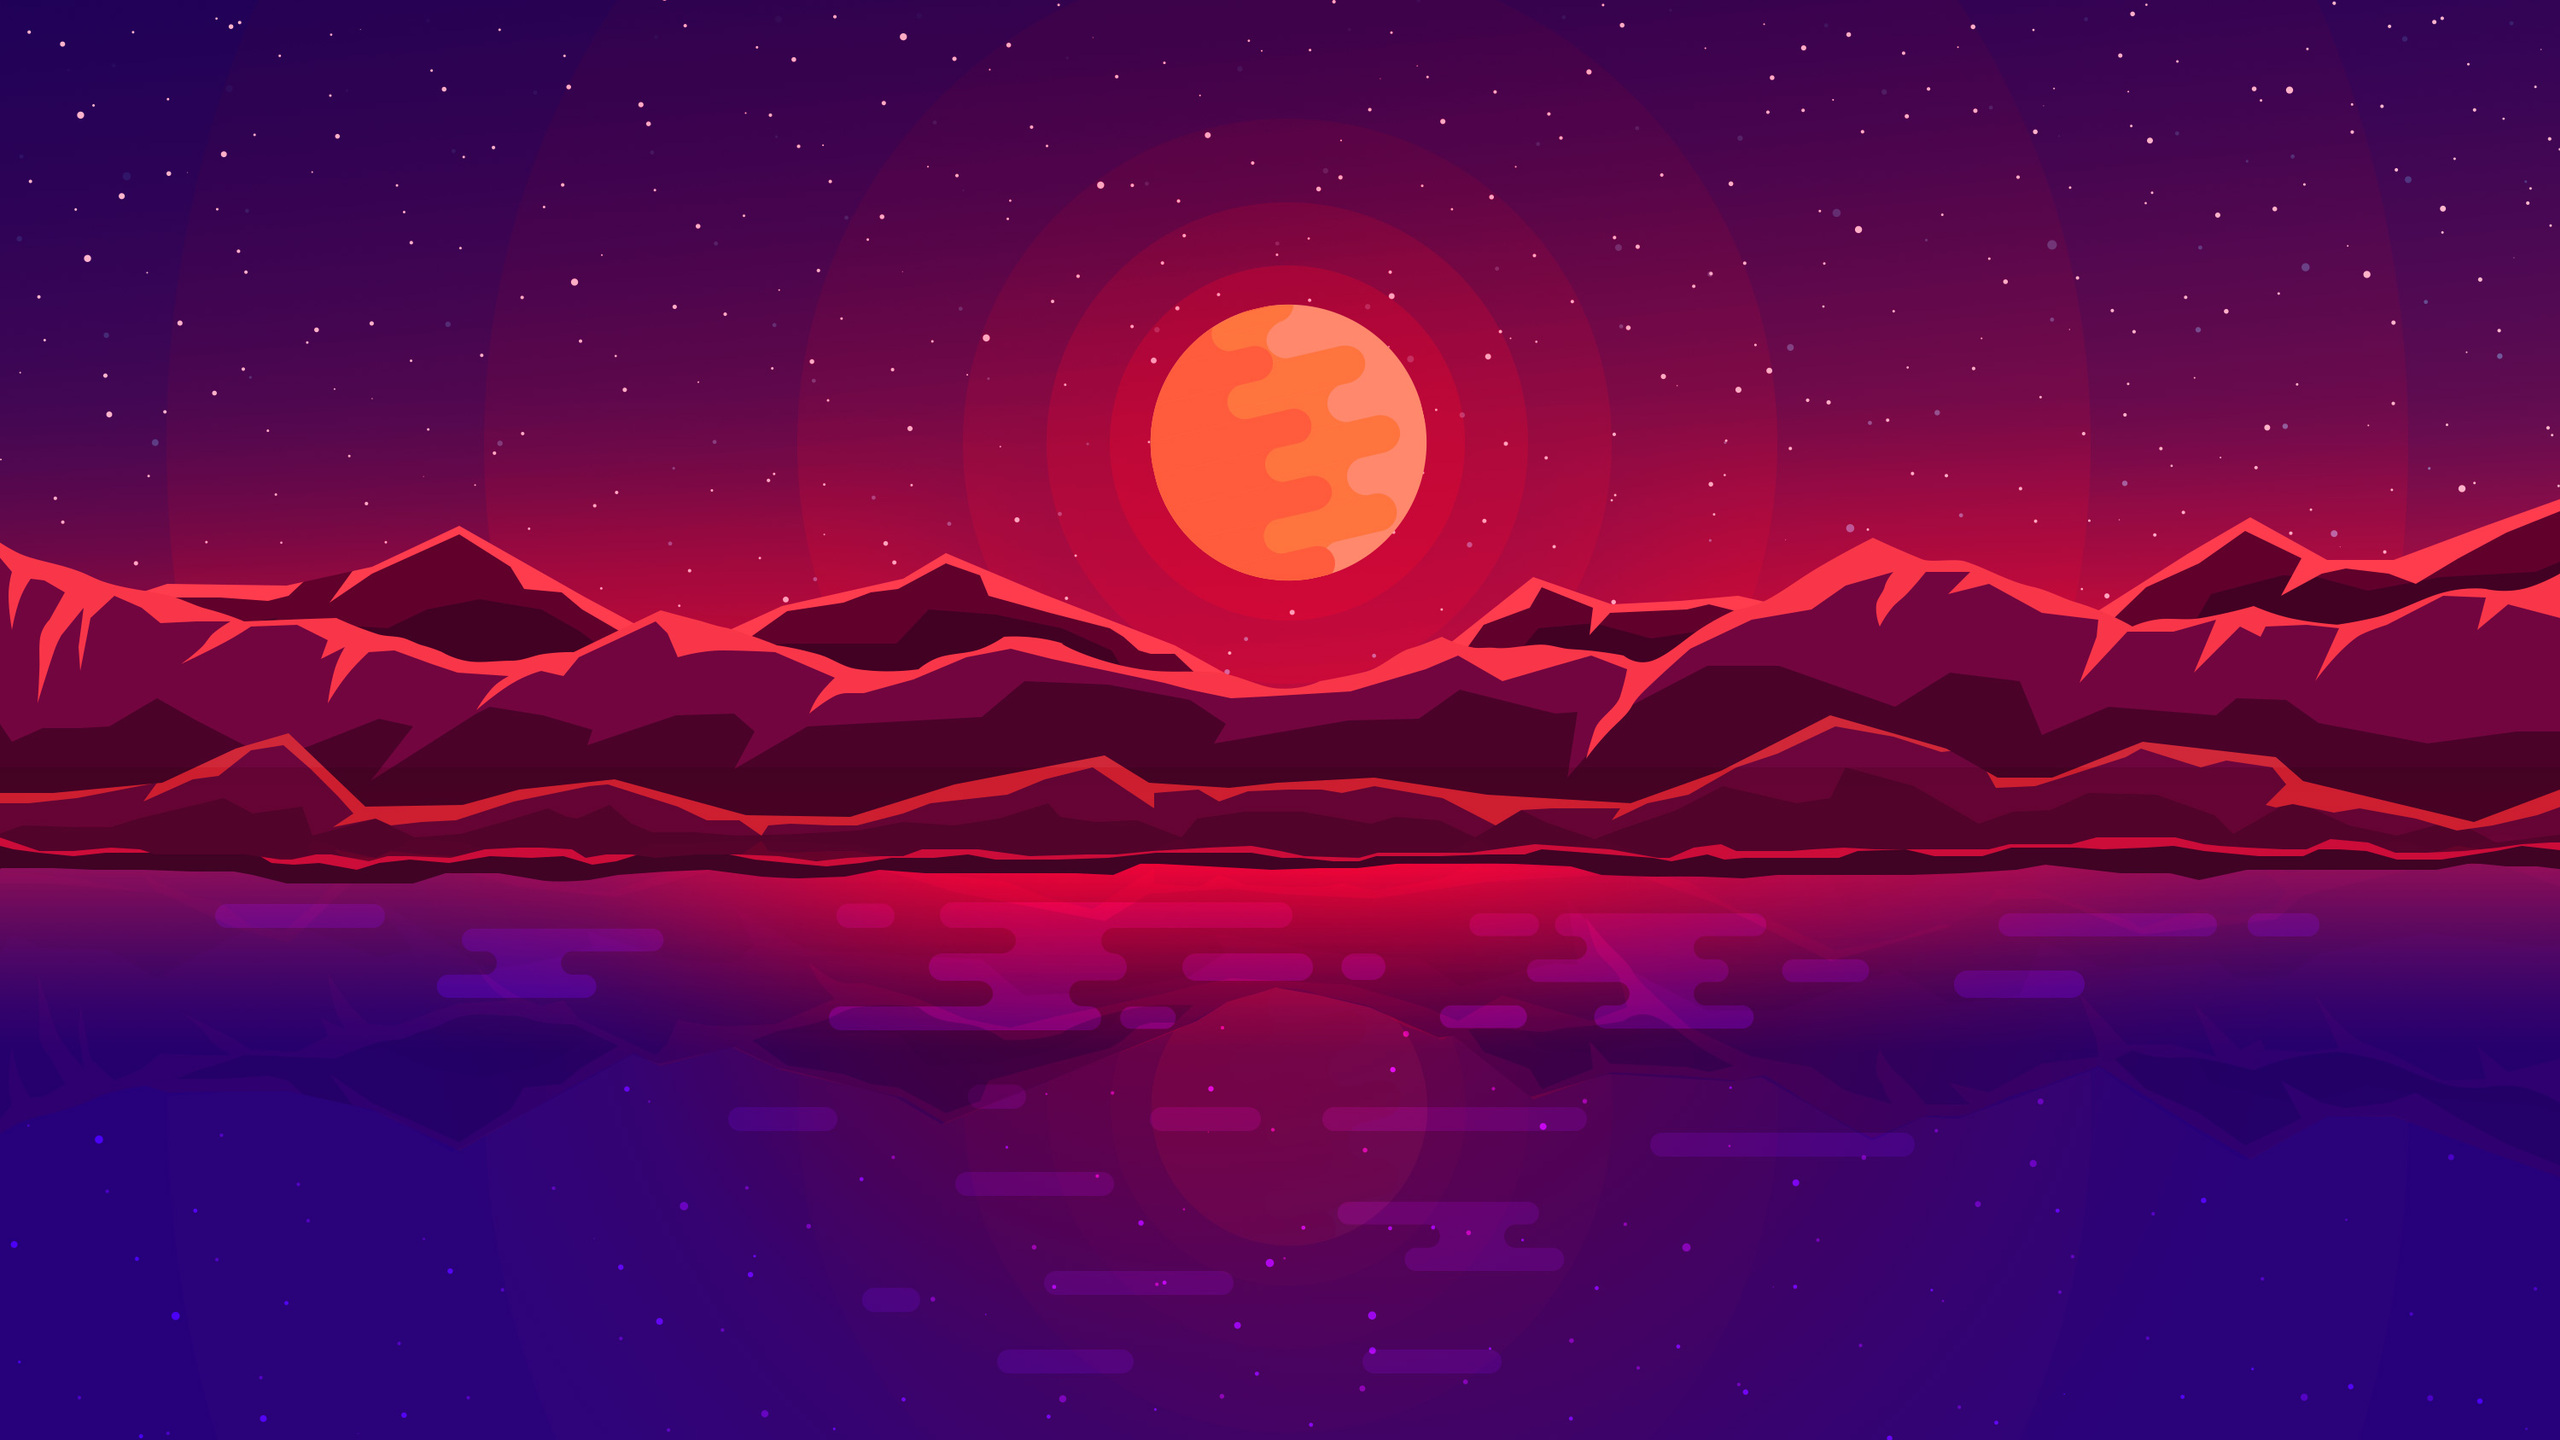 Abstract Art Red Sky Desktop Hd Artworks Desktop: 2560x1440 Moon Rays Red Space Sky Abstract Mountains 1440P